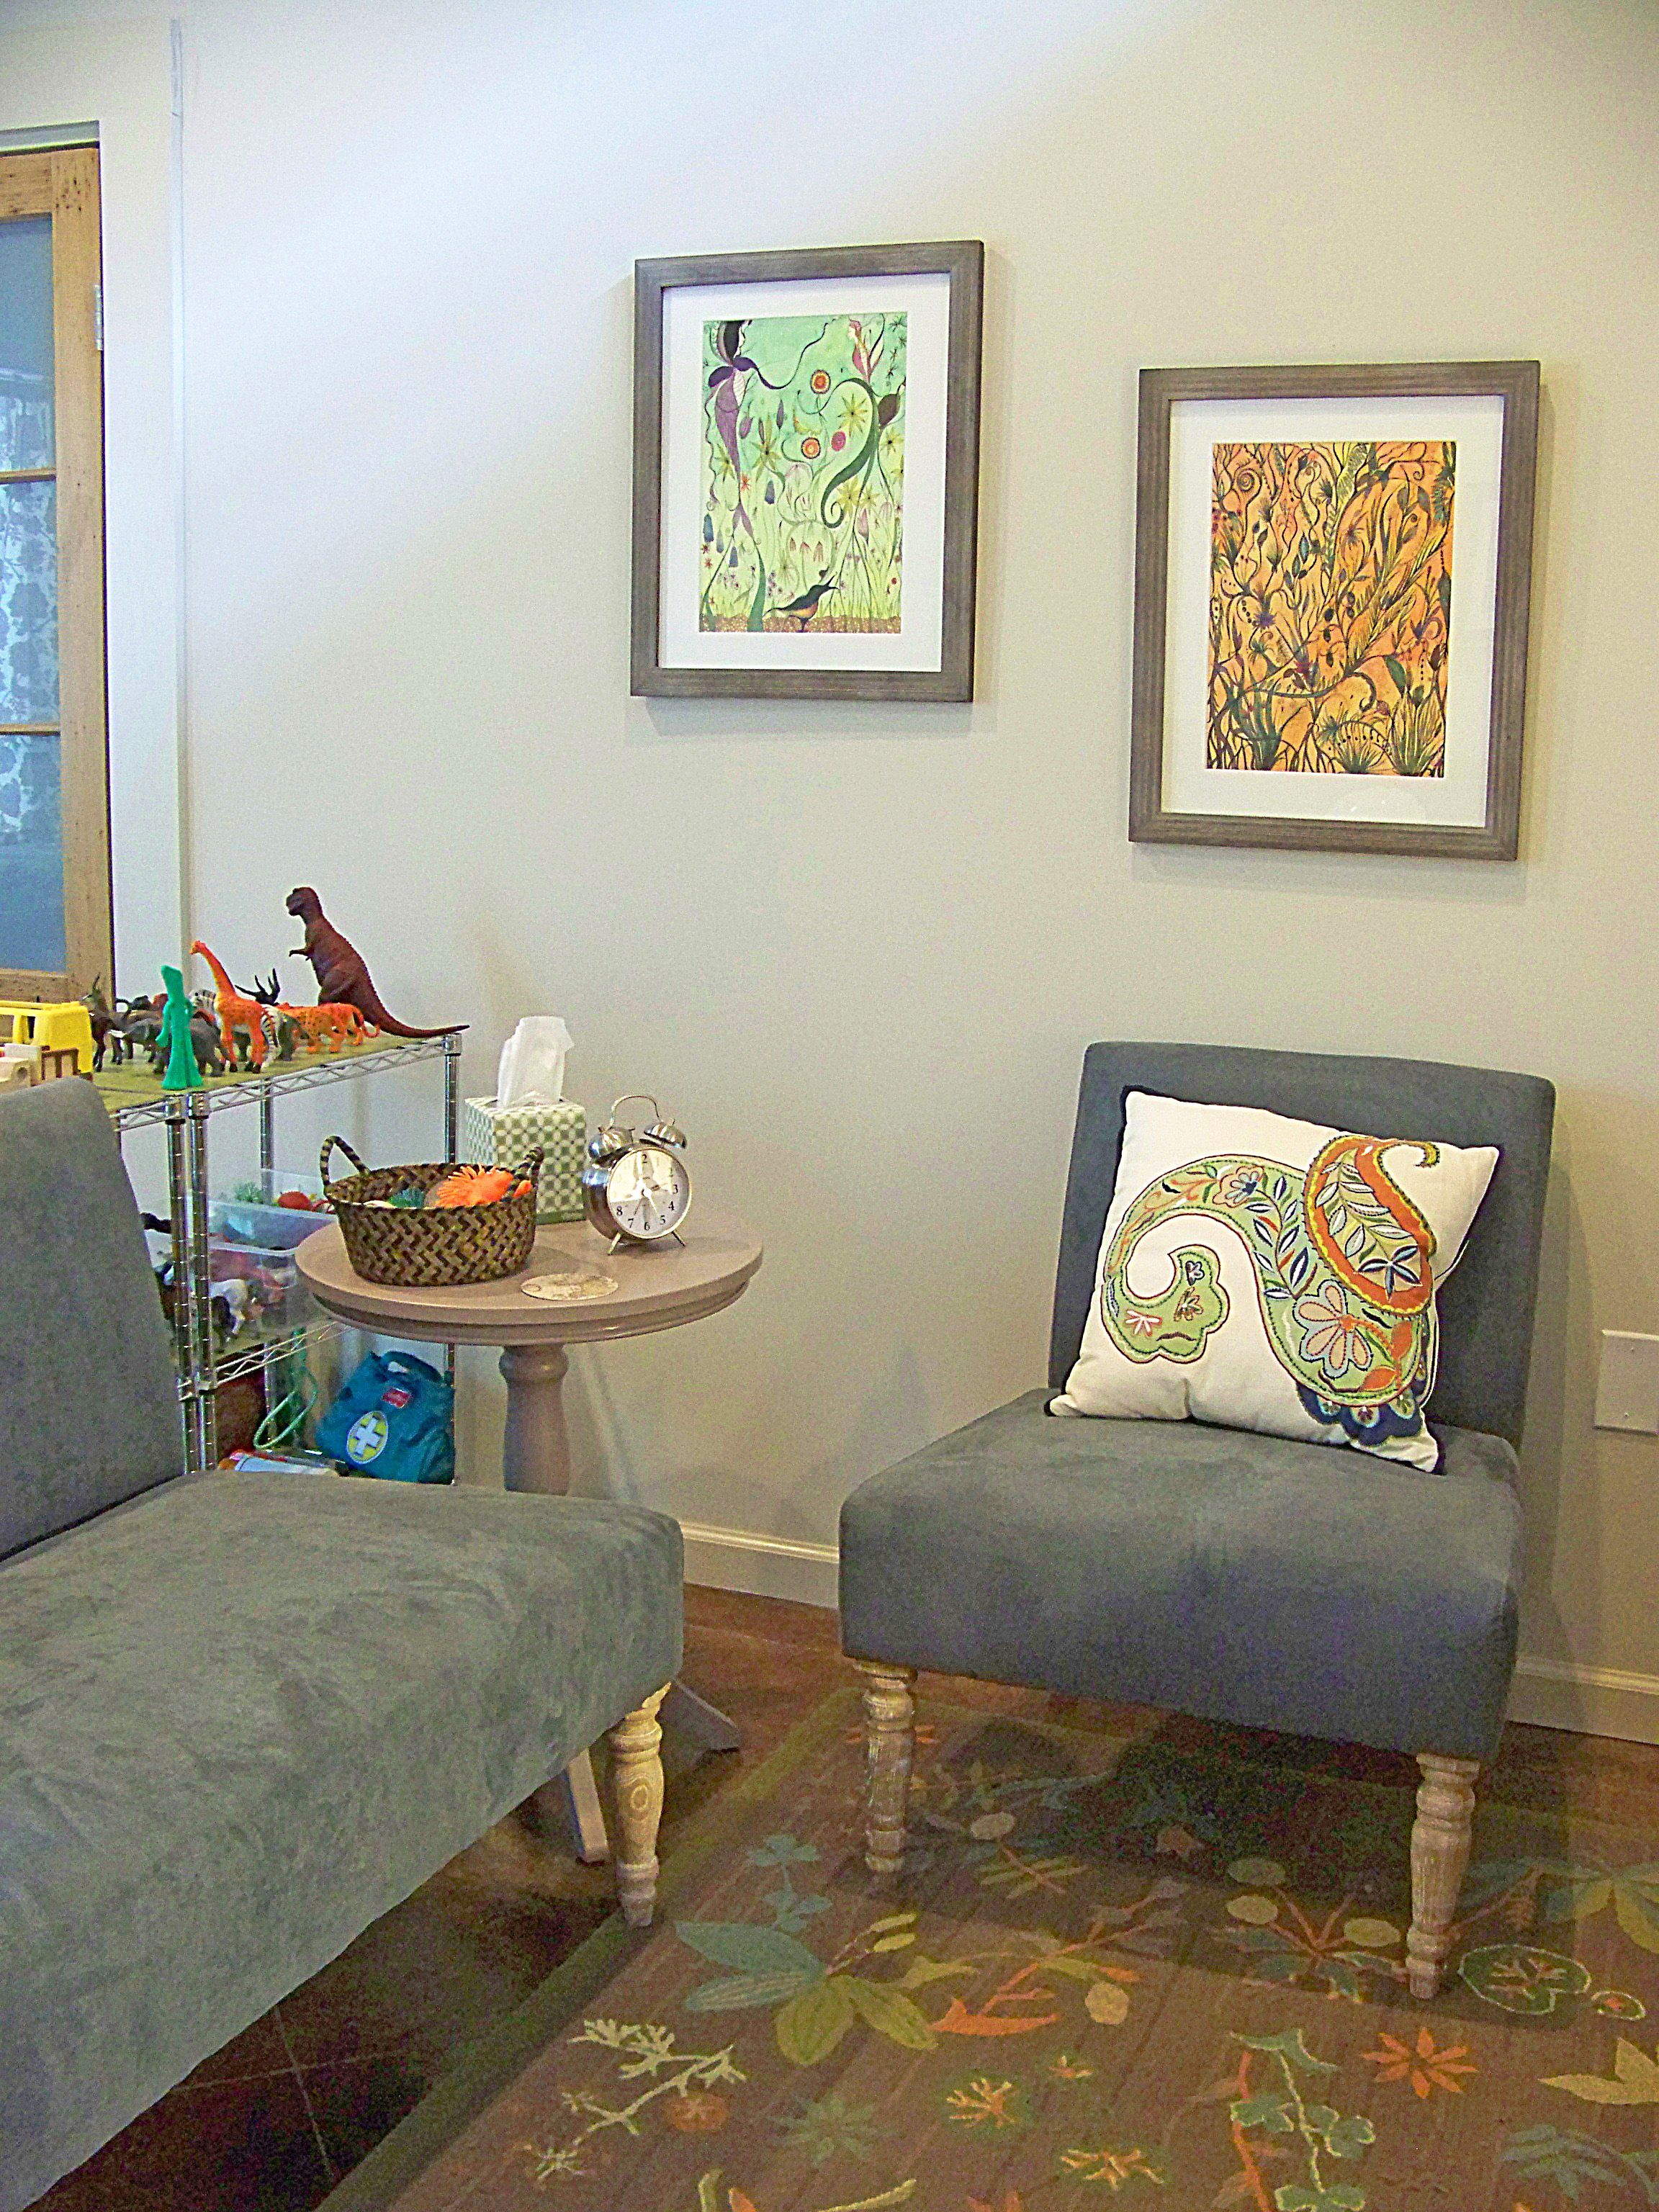 Counseling Office Kid Friendly This Would Be Great If: Half Play Therapy Playroom And Other Half Parent